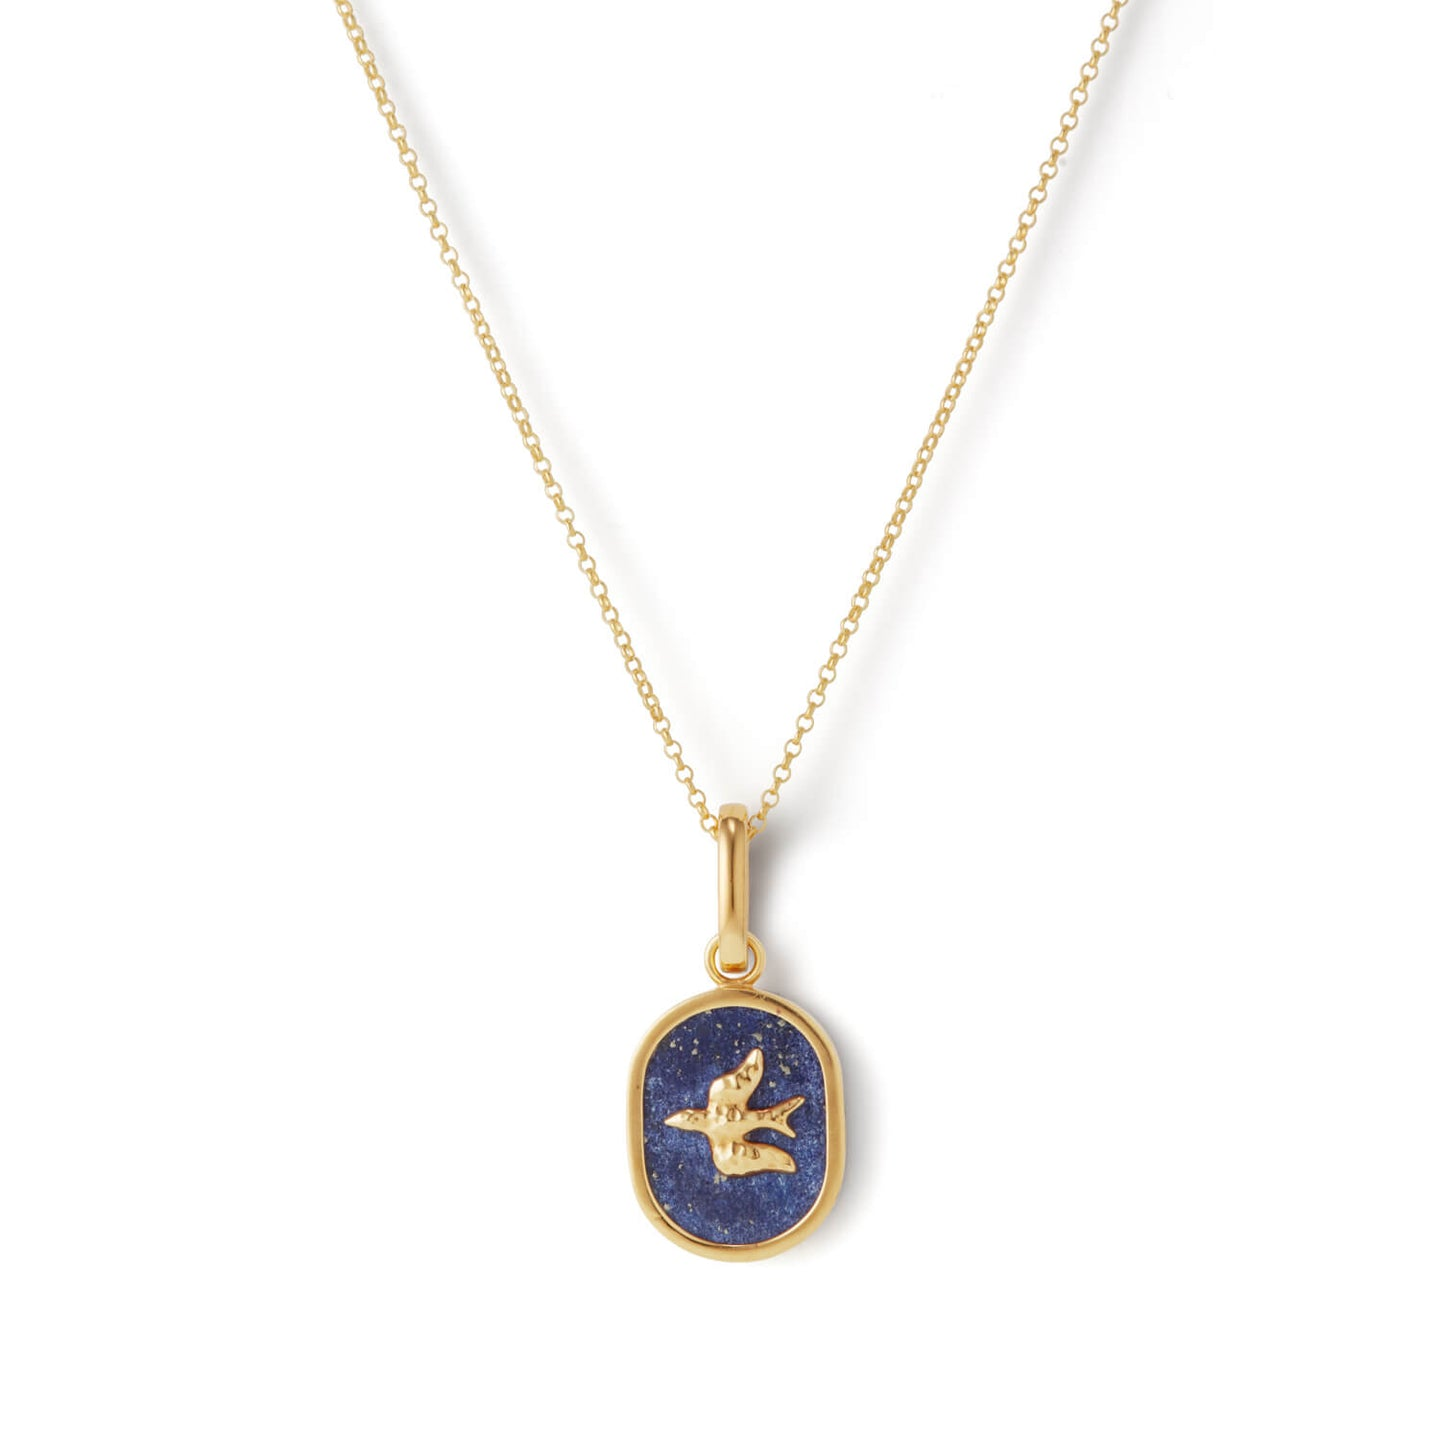 Gold L'Oiseau Pendant Necklace